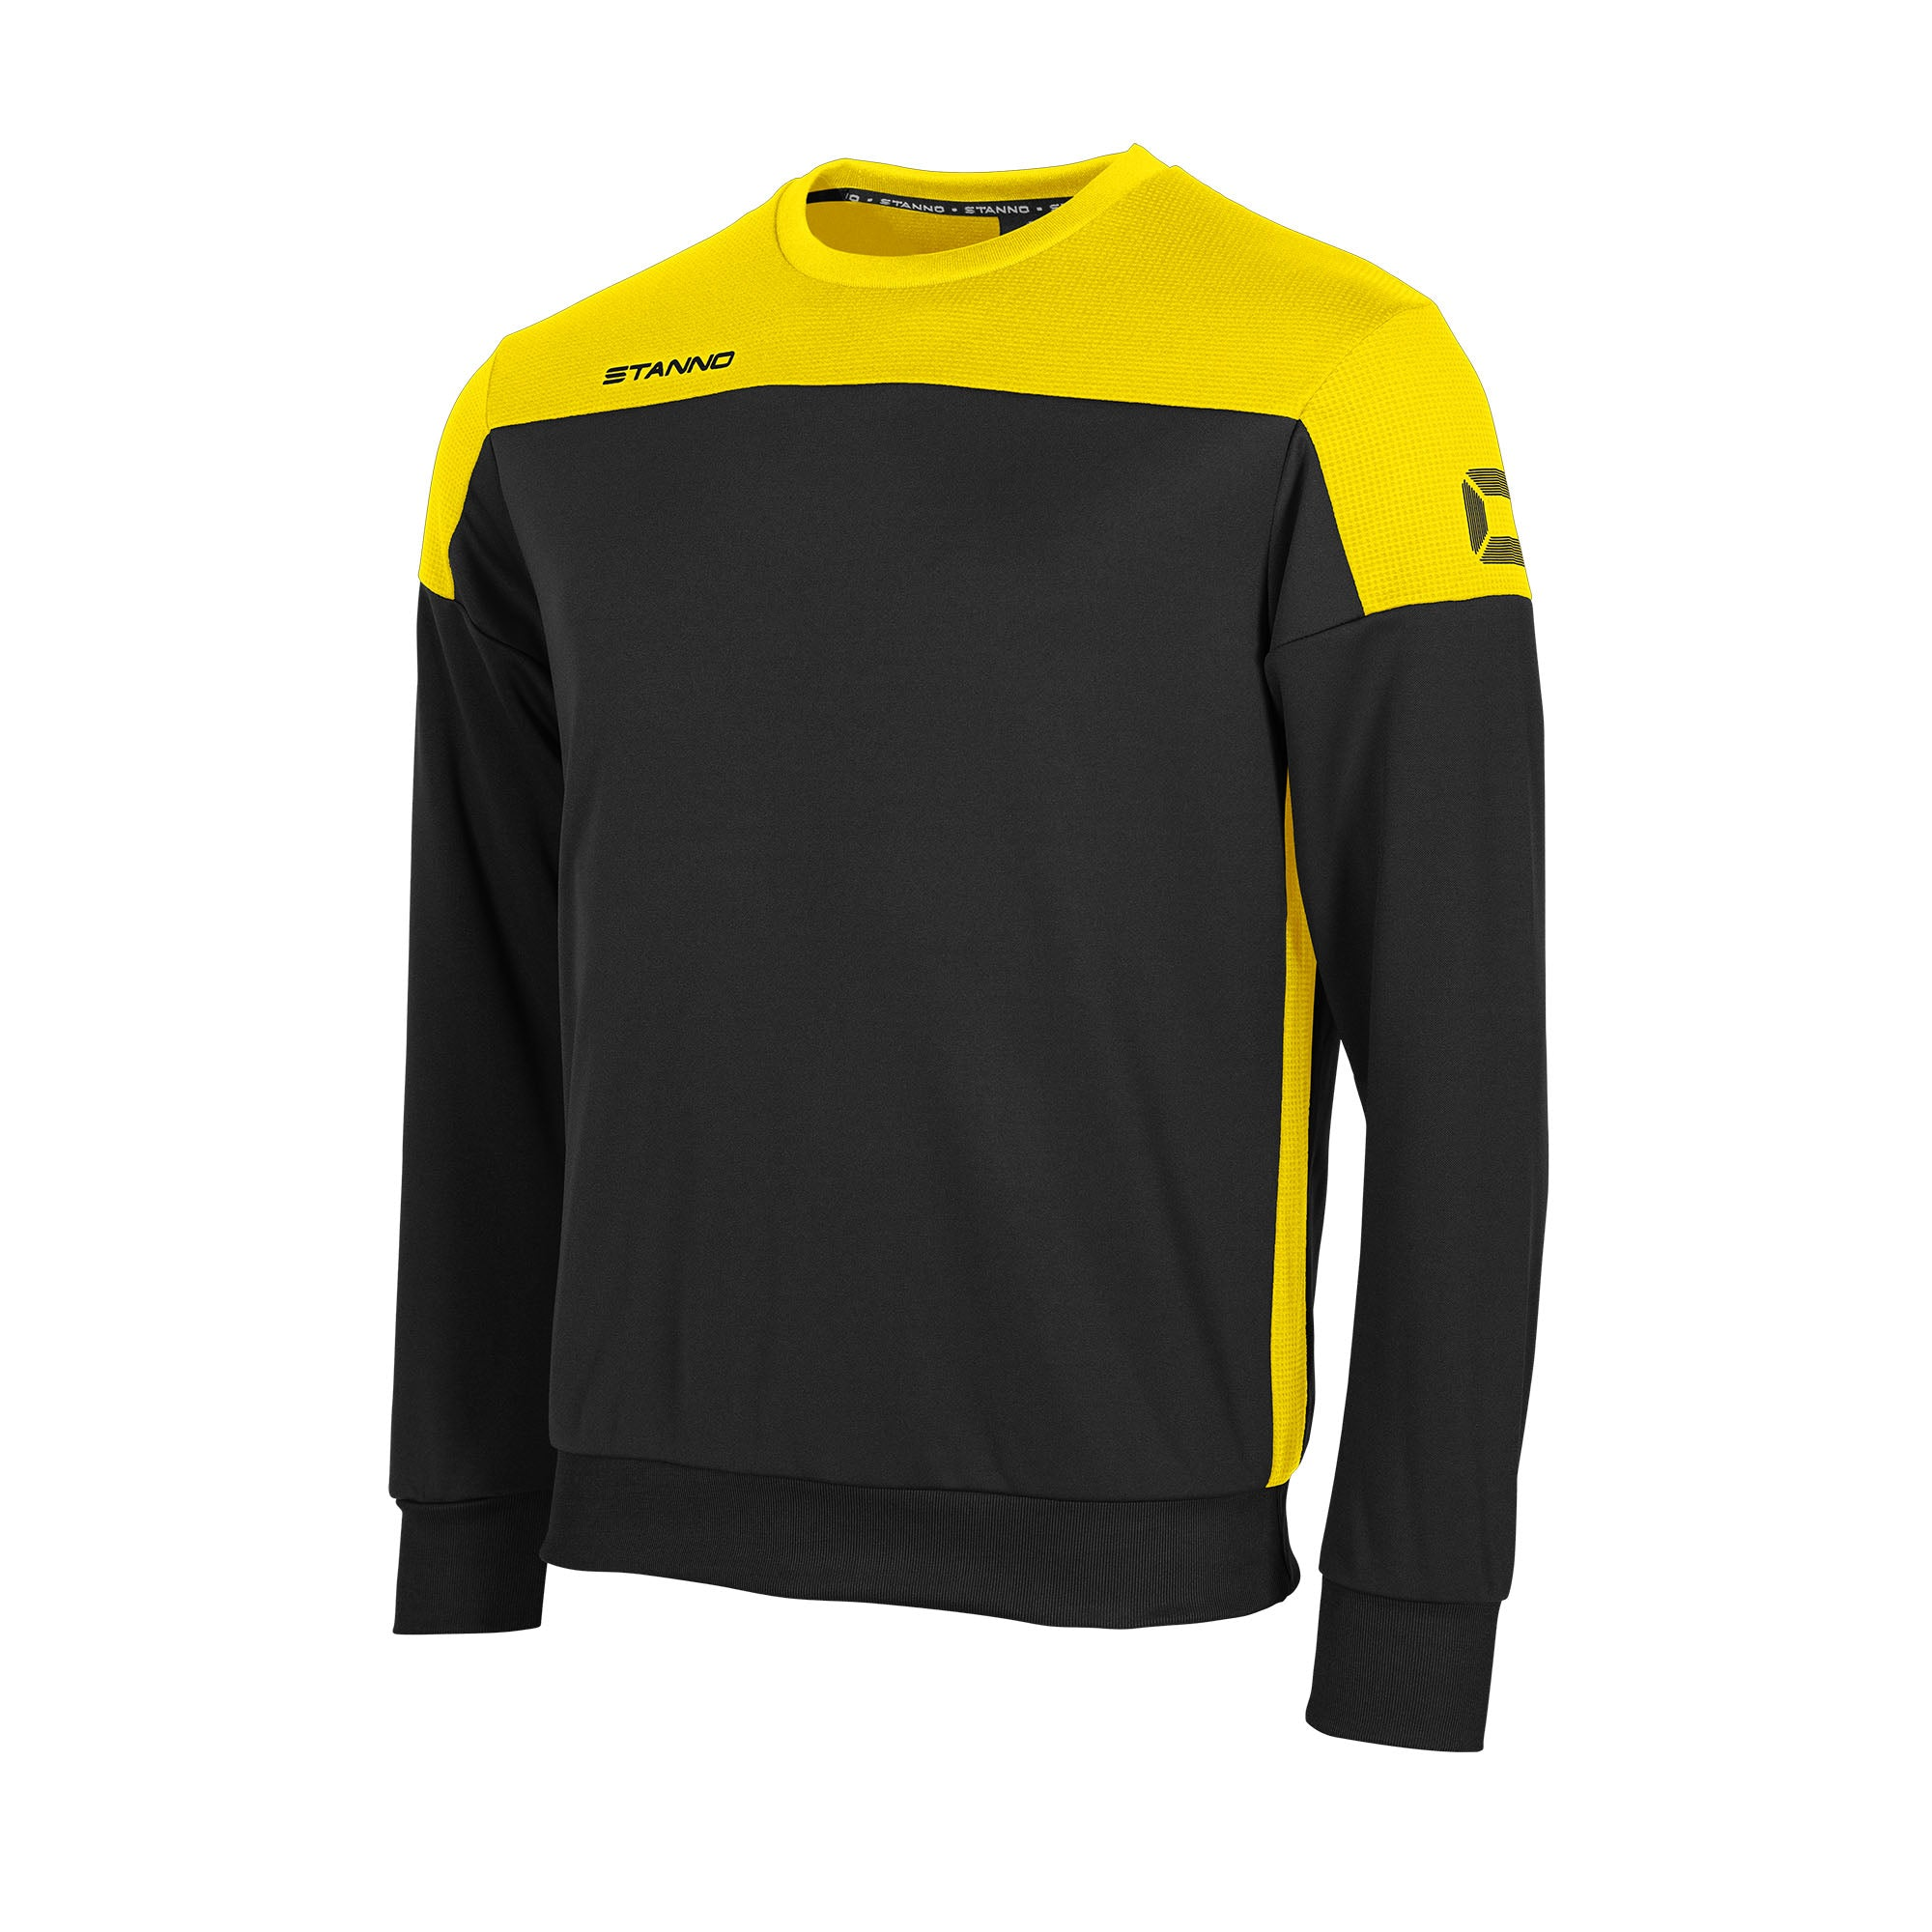 Stanno Pride round neck sweatshirt in black, with mesh contrast yellow shoulder and side panel